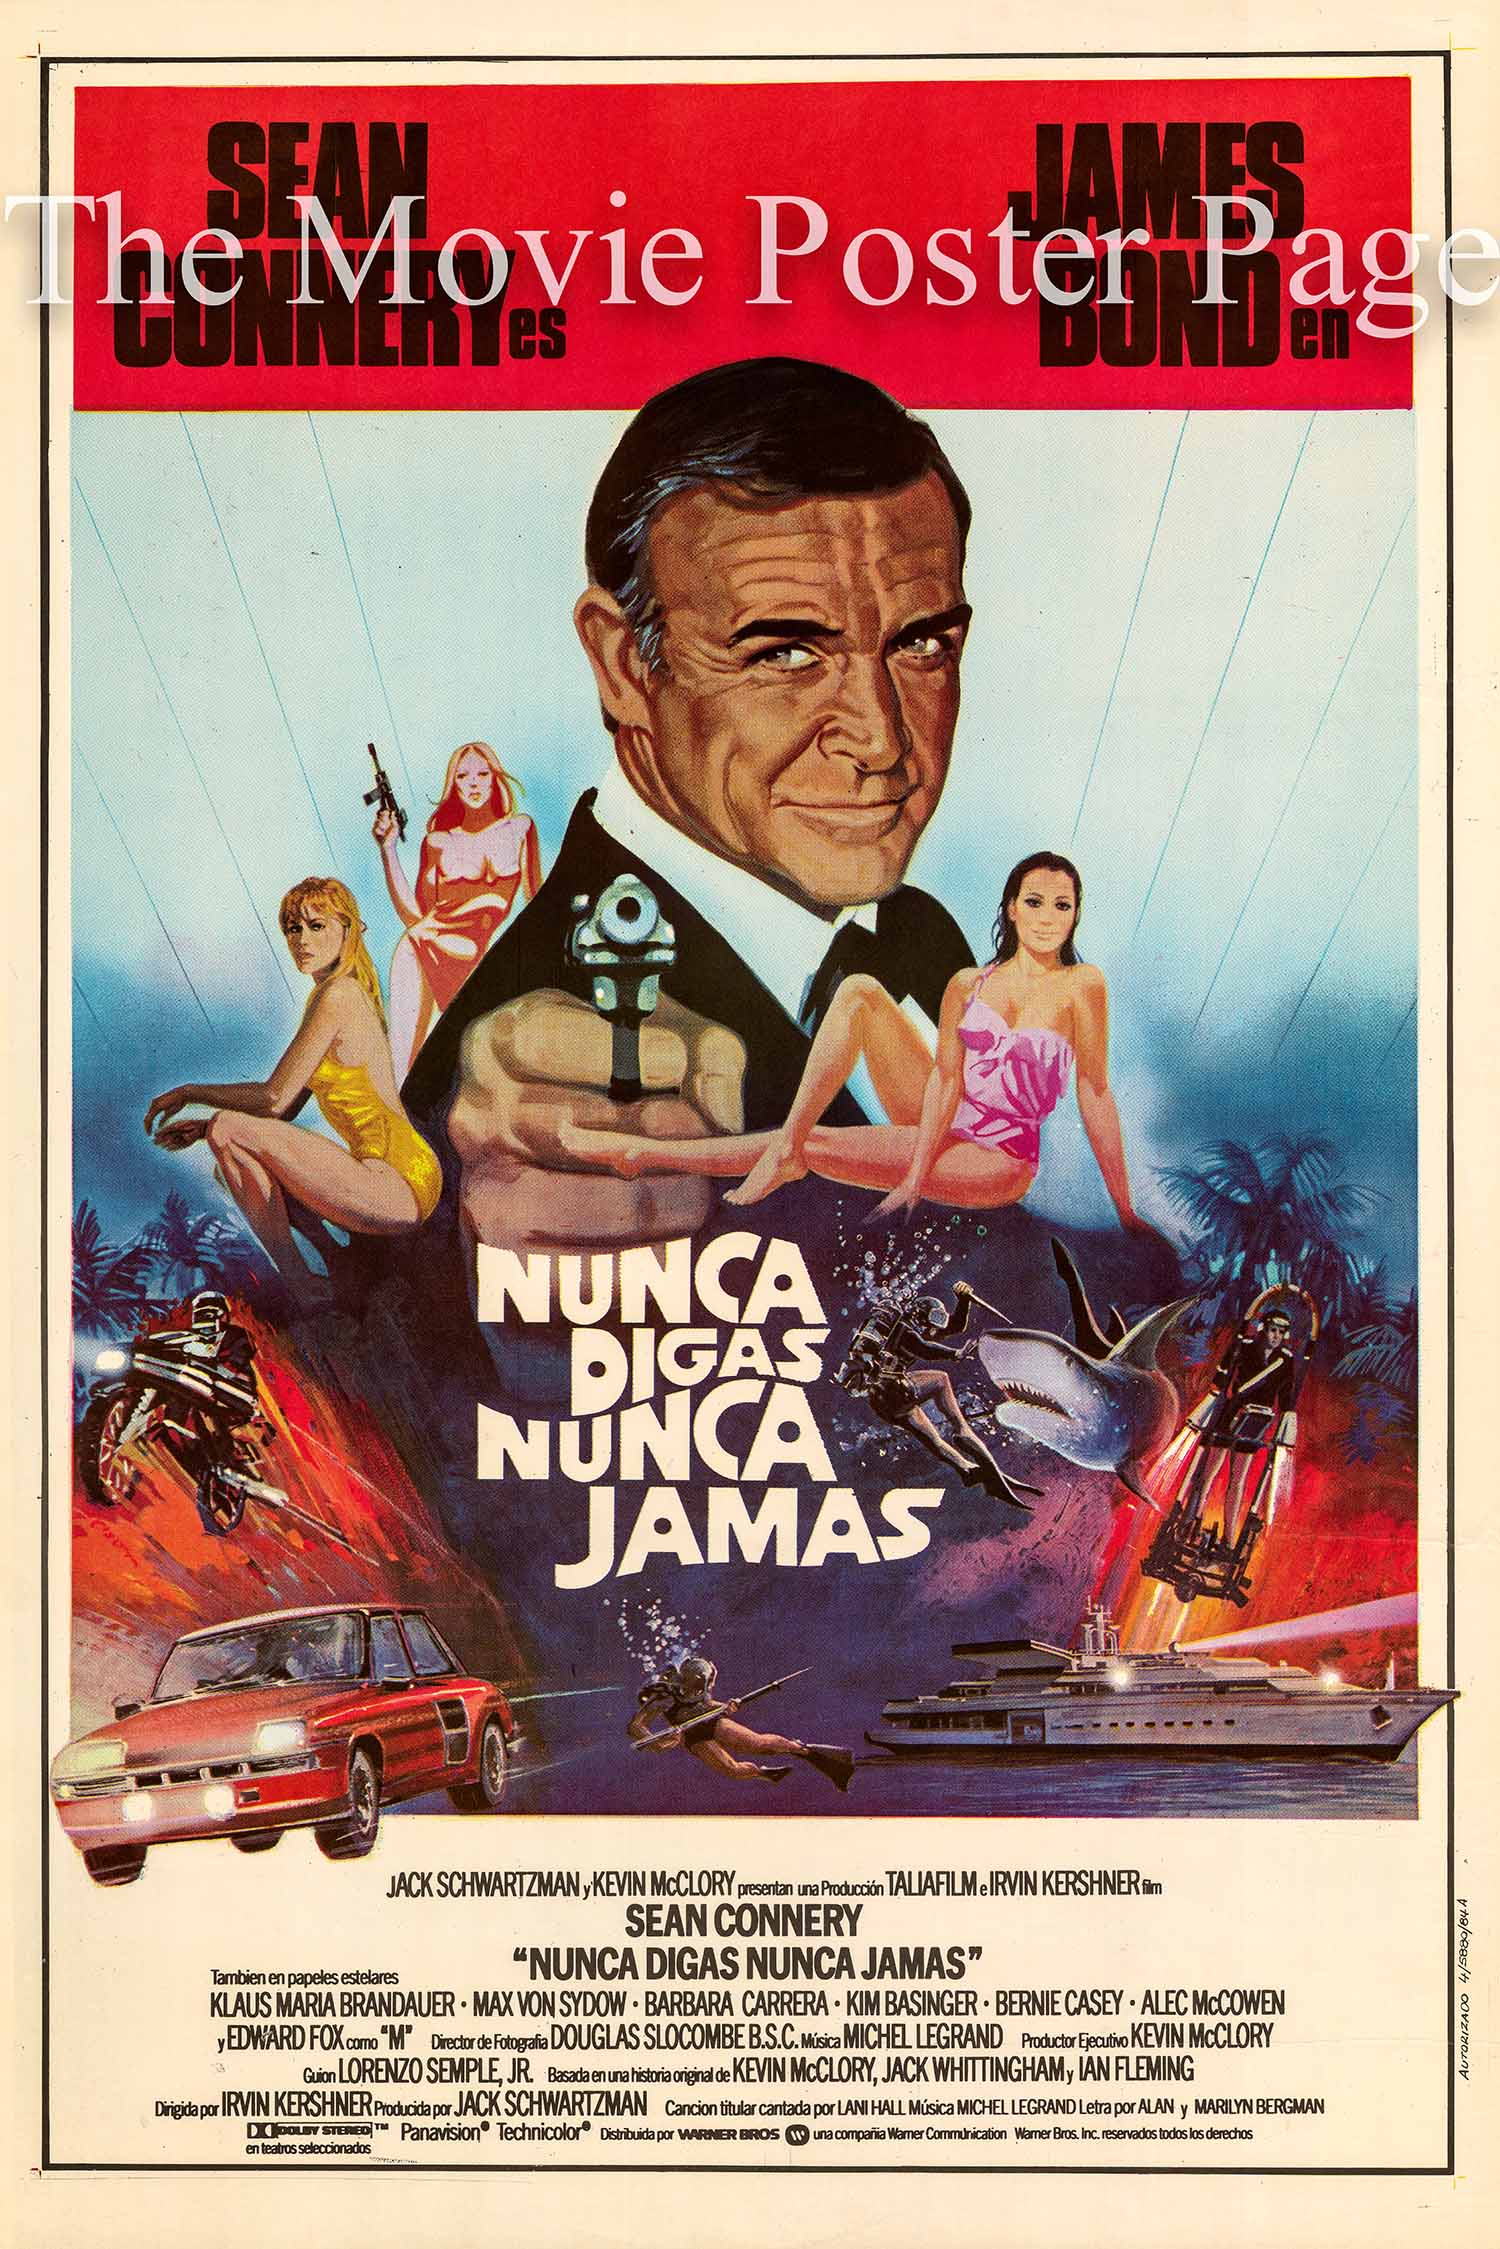 Pictured is an Spanish promotional poster for the 1983 Irvin Kershner film Never Say Never Again starring Sean Connery as James Bond.